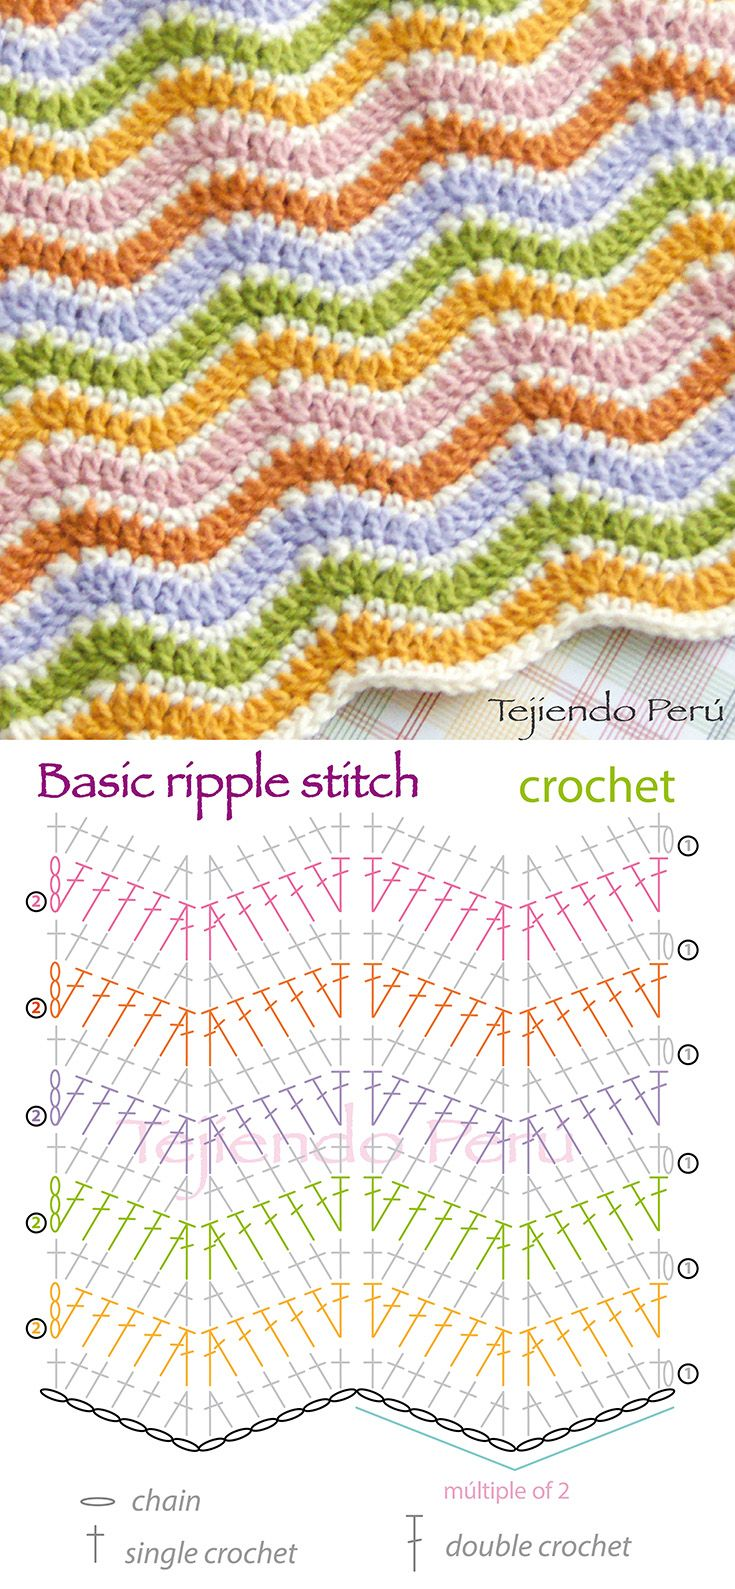 Crochet: basic ripple stitch diagram (pattern or chart)! | Just ...